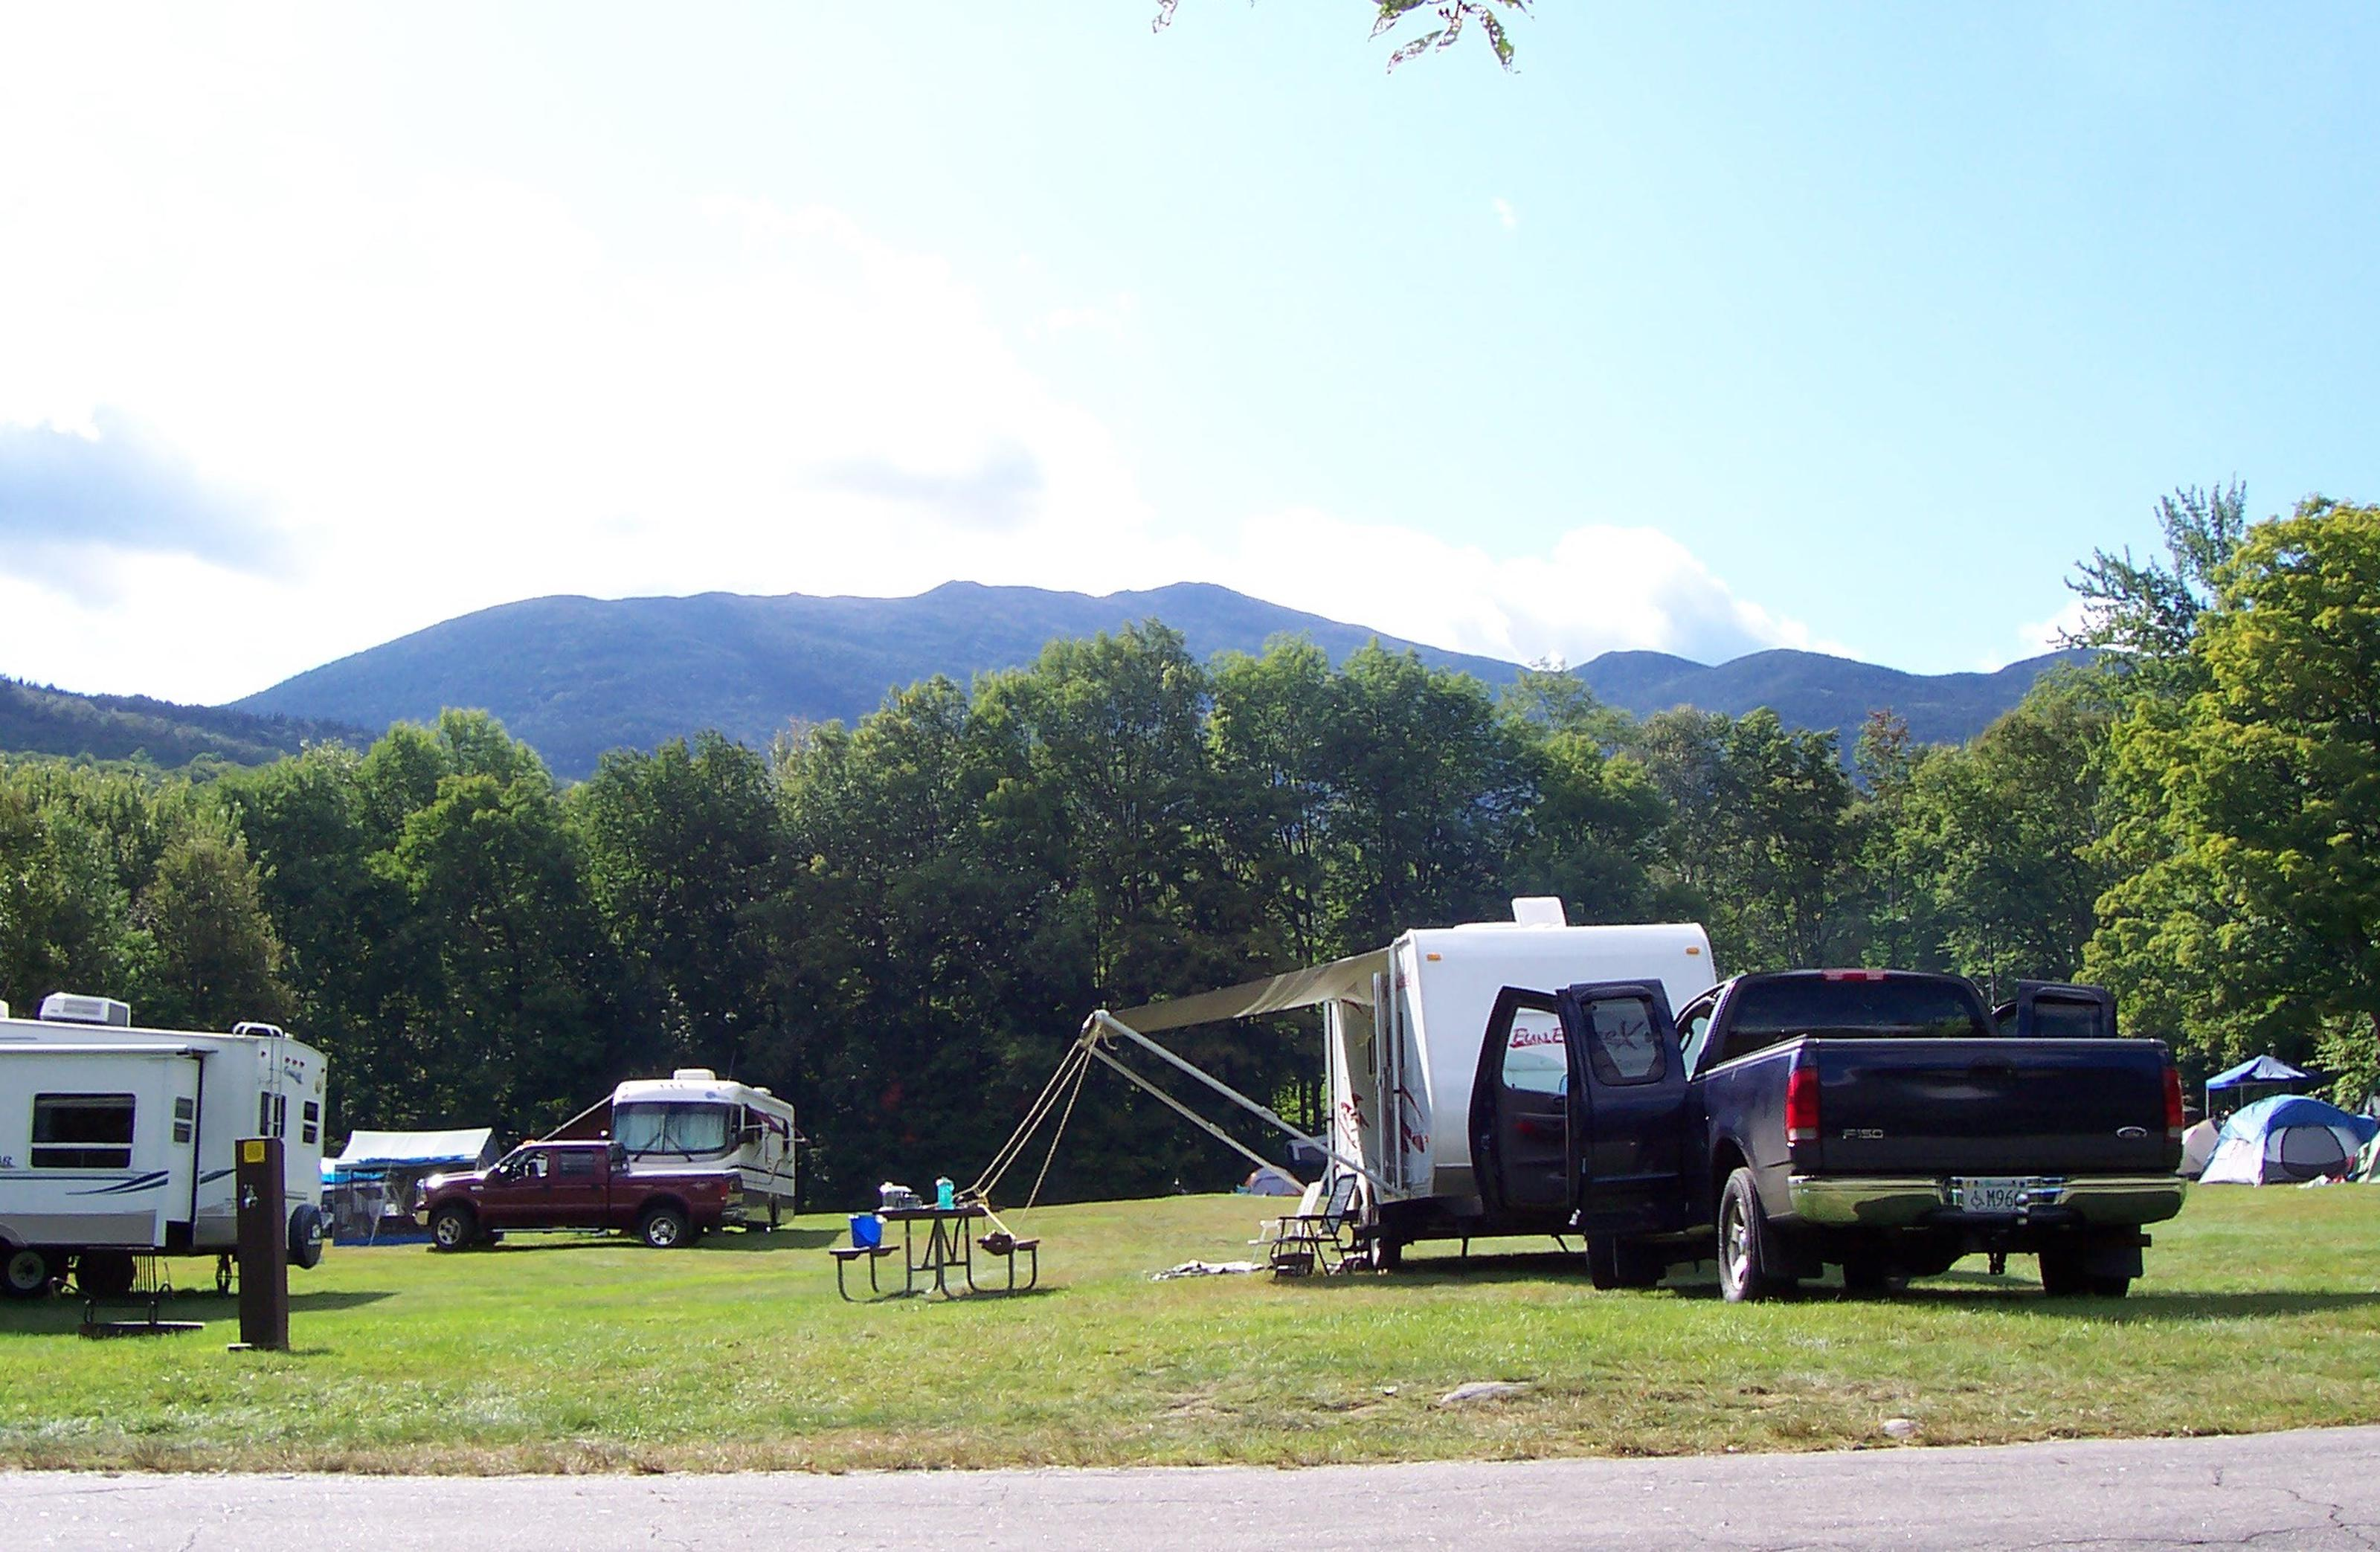 Hayes FieldLooking at Mount Madison from Hayes Field